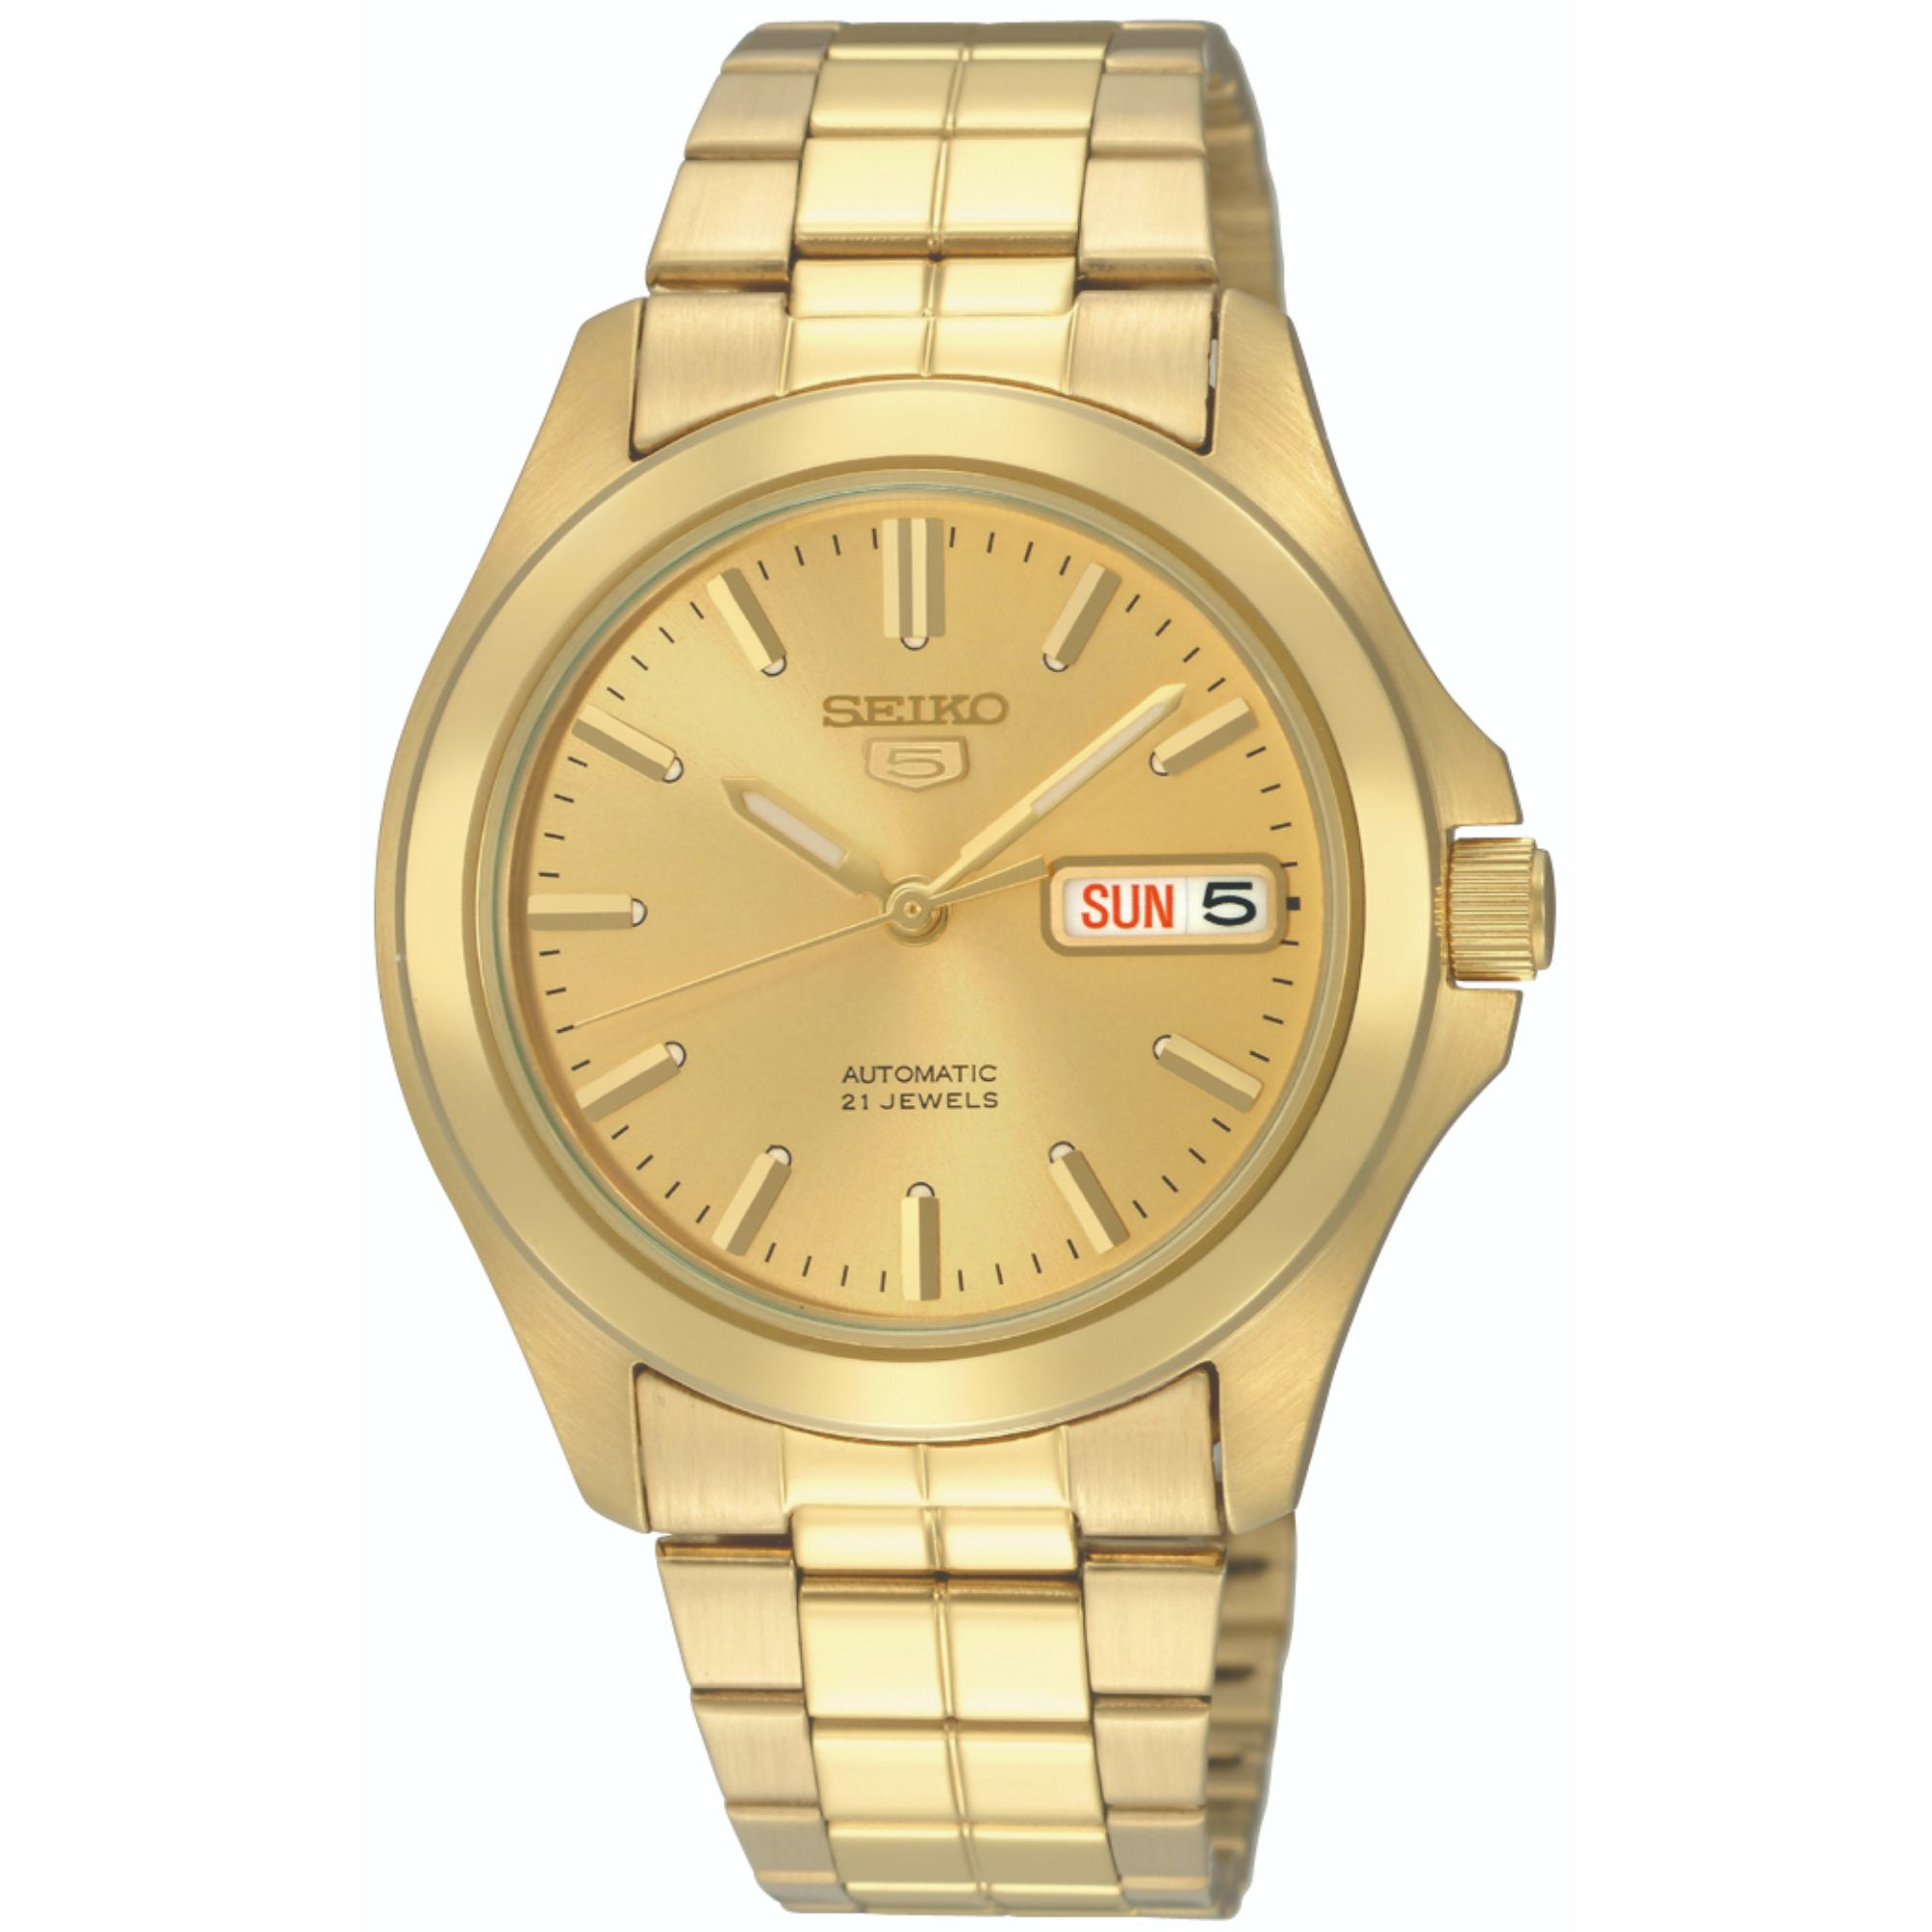 Seiko 5 Automatic Full Gold PVD Stainless Steel Men's Watch SNKK98K1